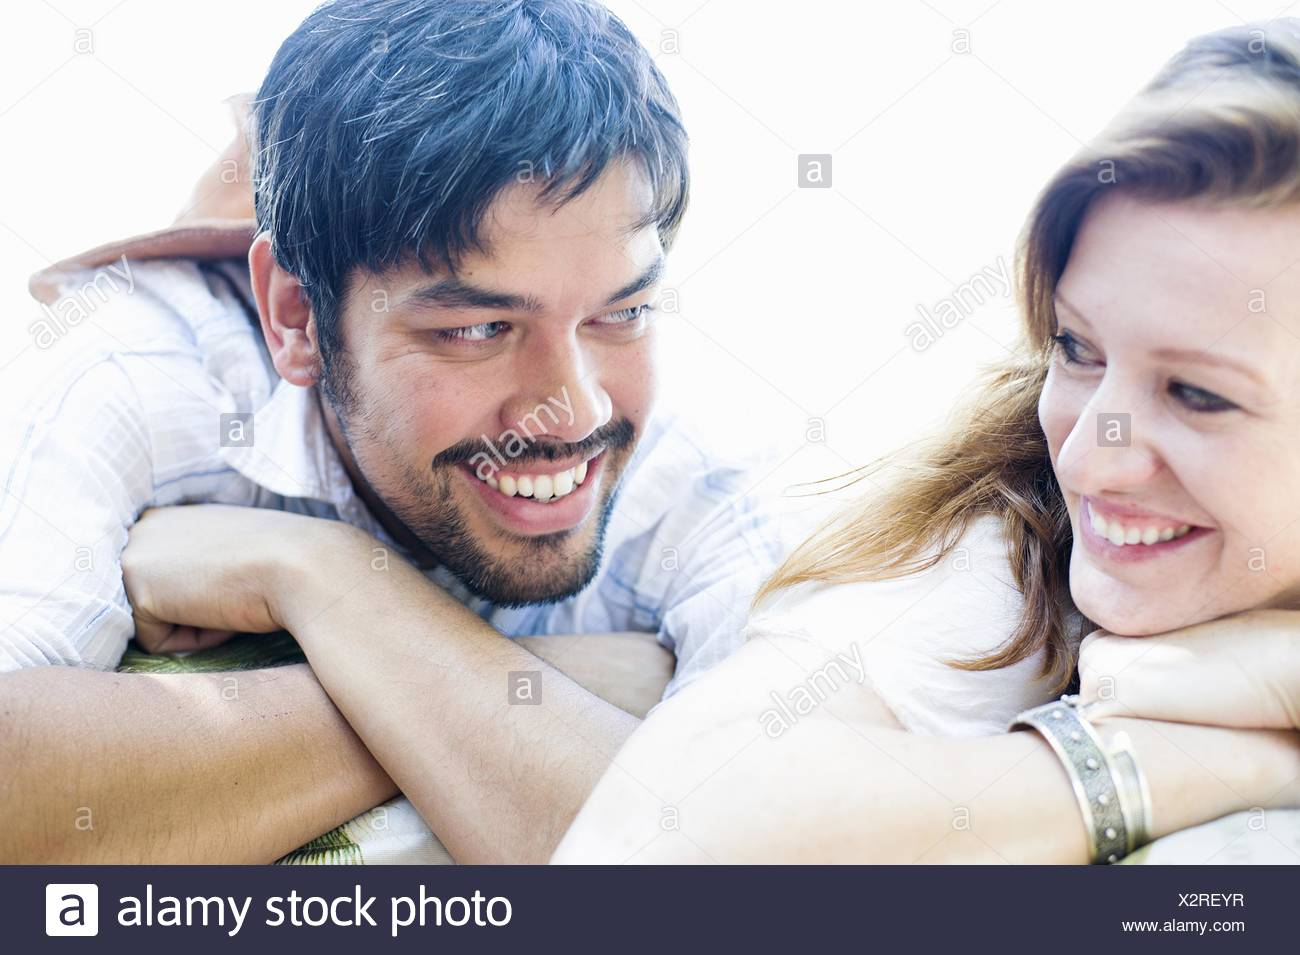 Close up portrait of happy couple making eye contact - Stock Image